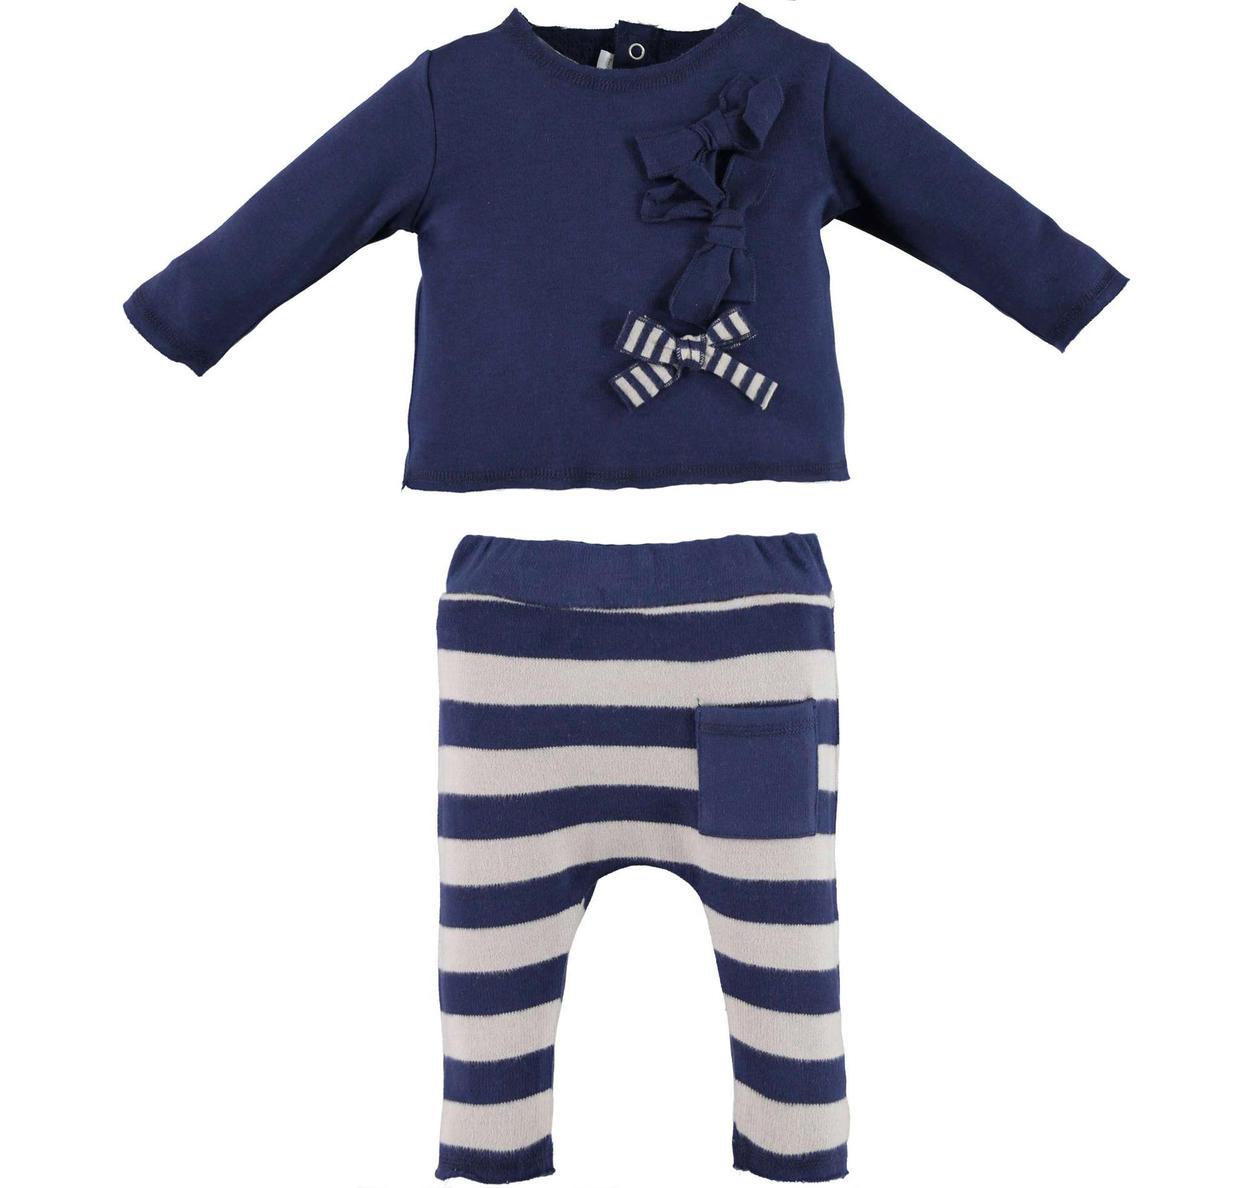 38143f819 Minibanda t-shirt with bows and striped trousers for babies from 0 ...